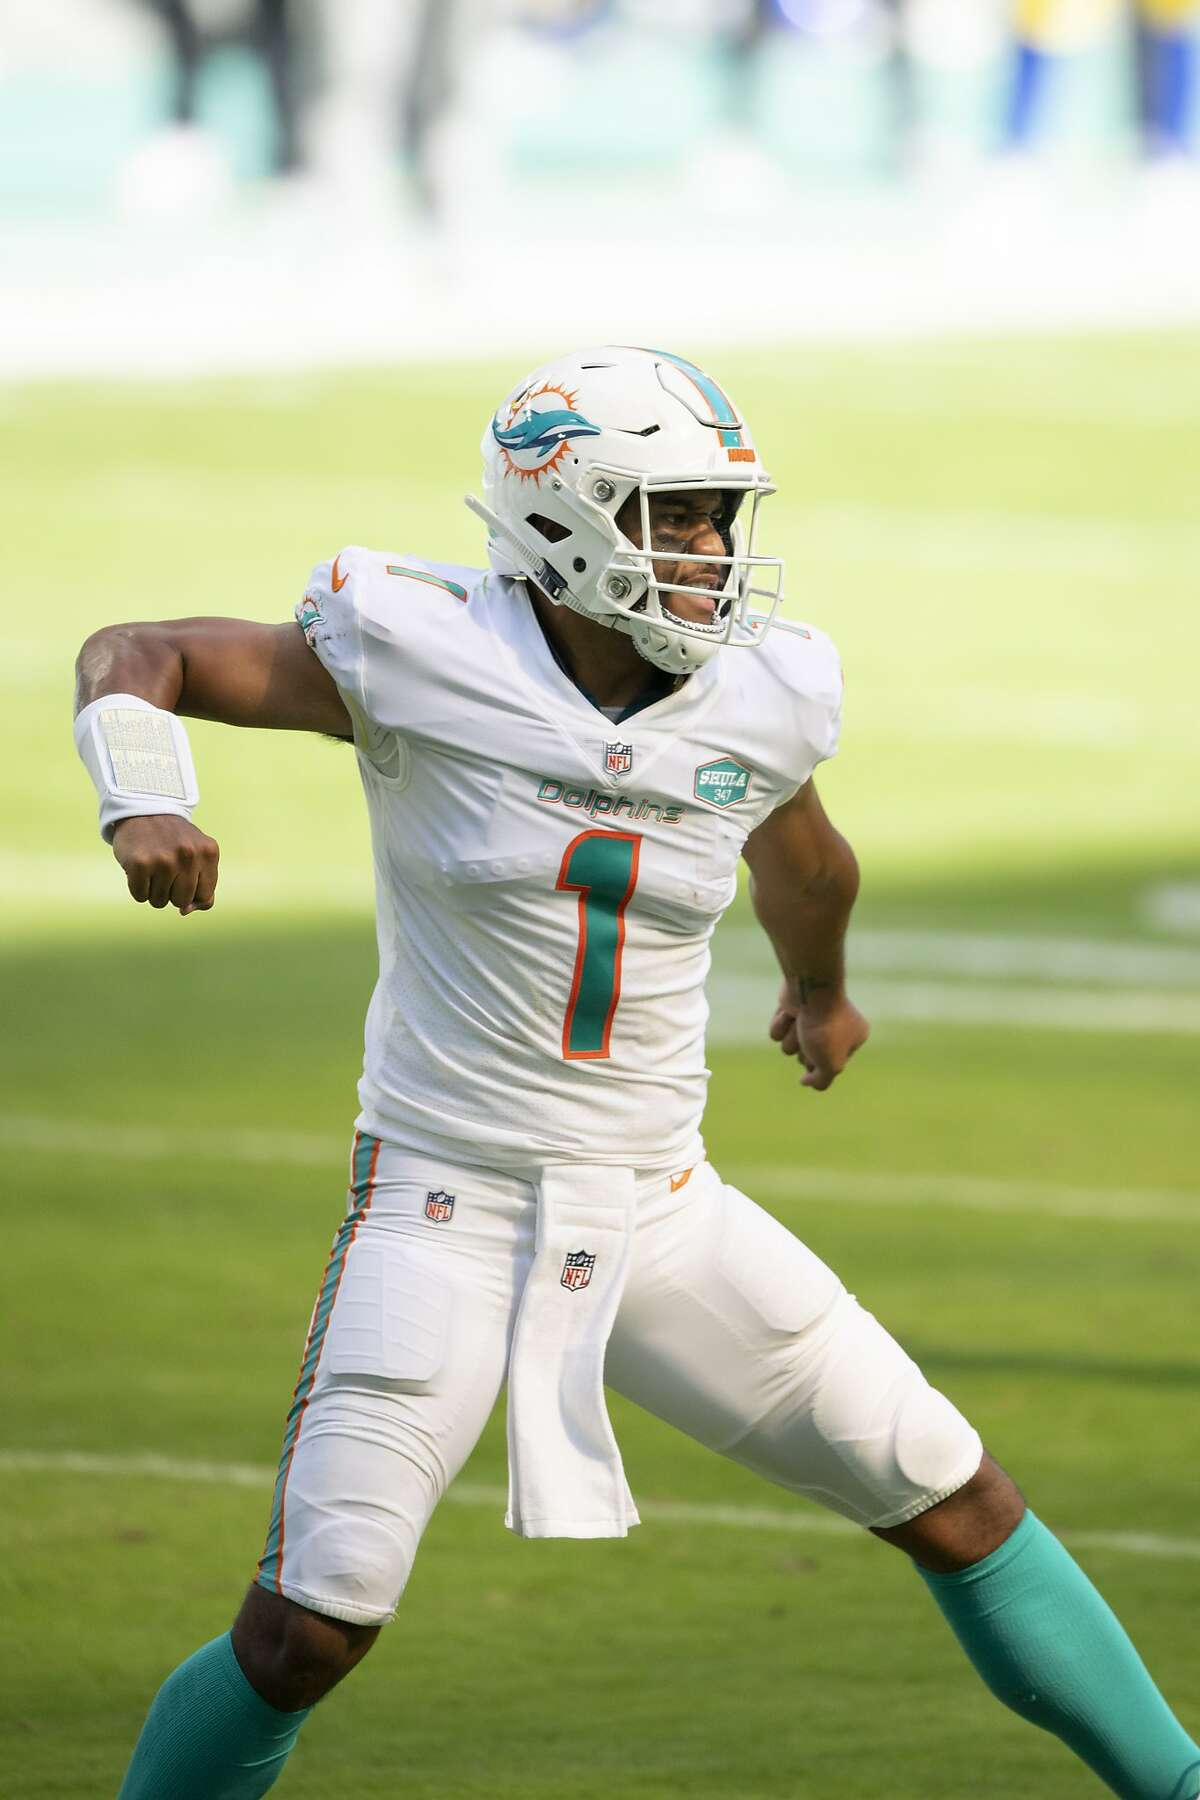 The Dolphins' Tua Tagovailoa celebrates his first career TD pass, to wide receiver DeVante Parker, against the Rams.